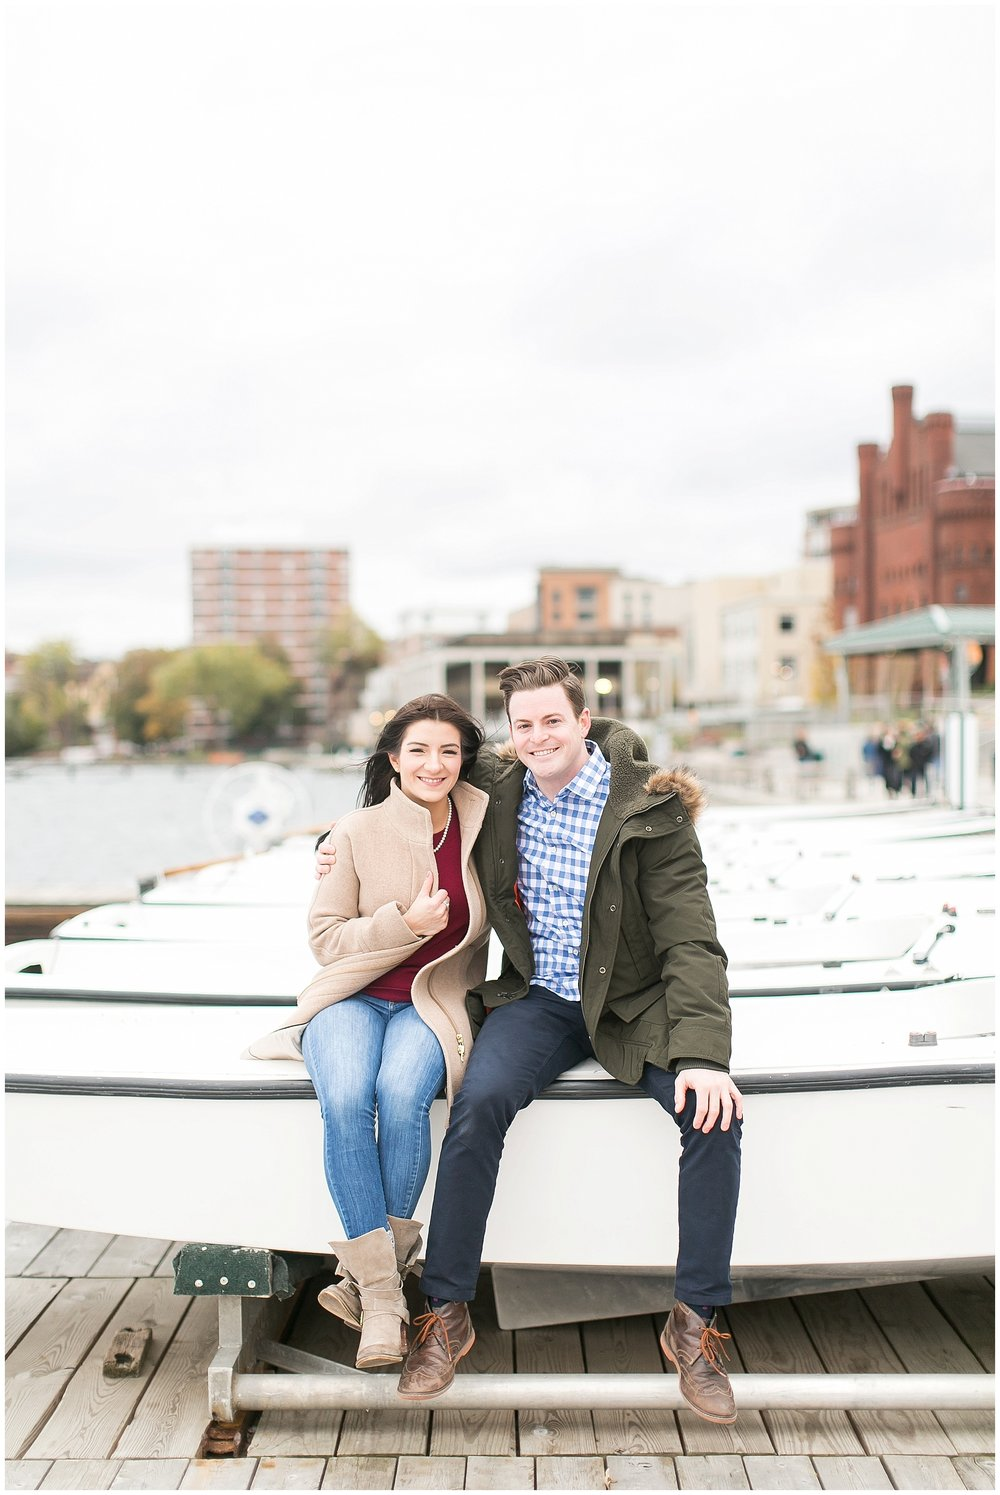 Autumn_engagement_session_memorial_union_Madison_wisconsin_0793.jpg